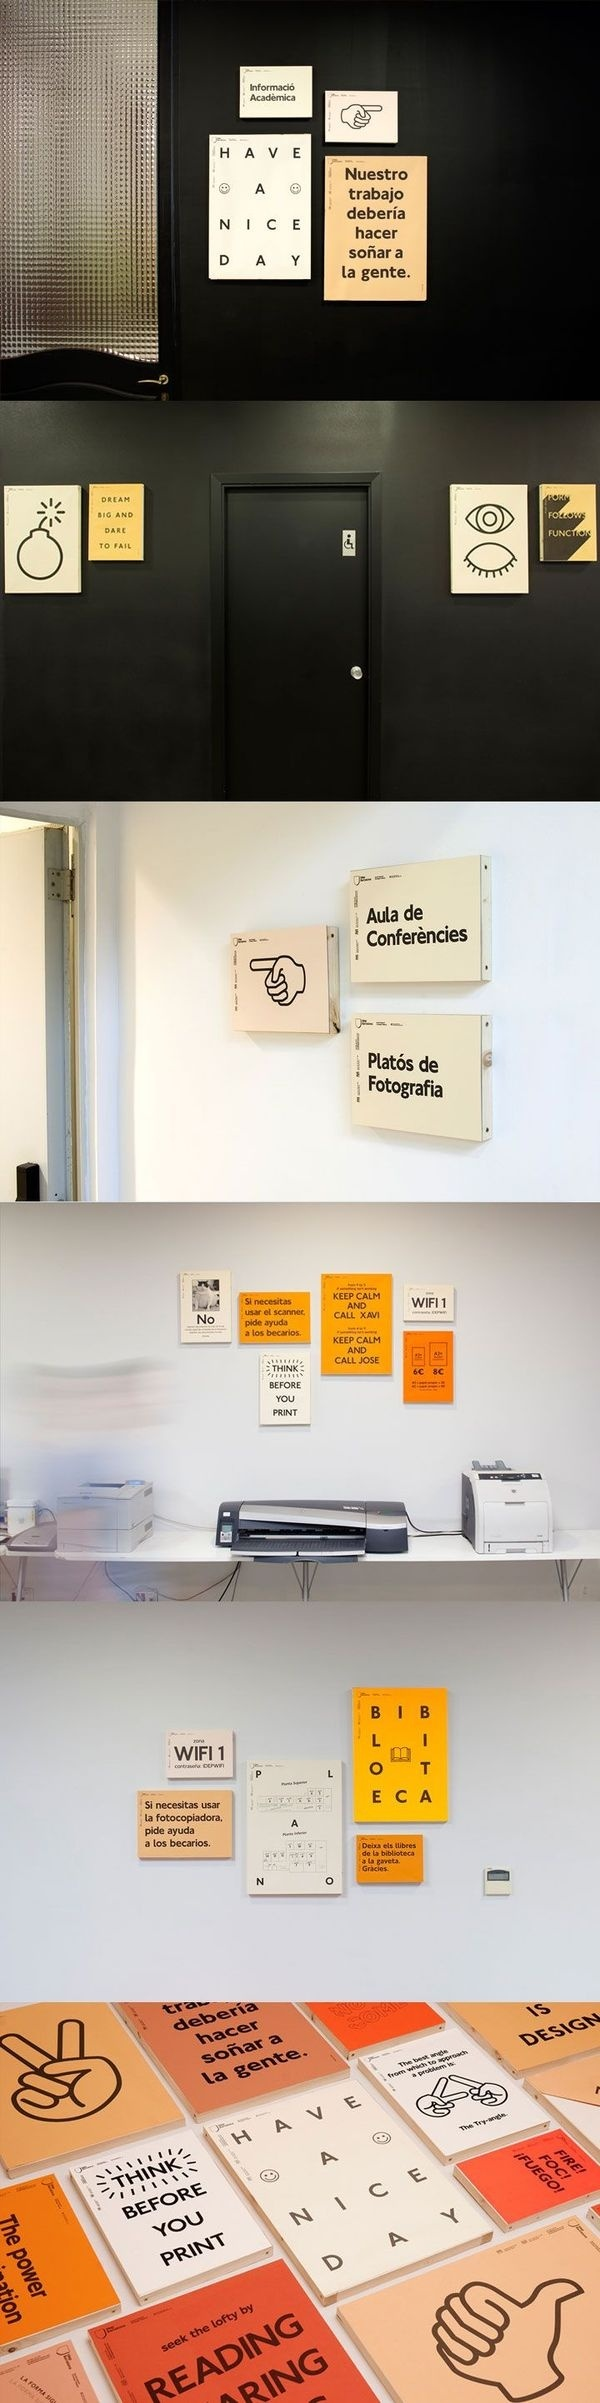 IDEP Barcelona by Querida #typography #image #signage